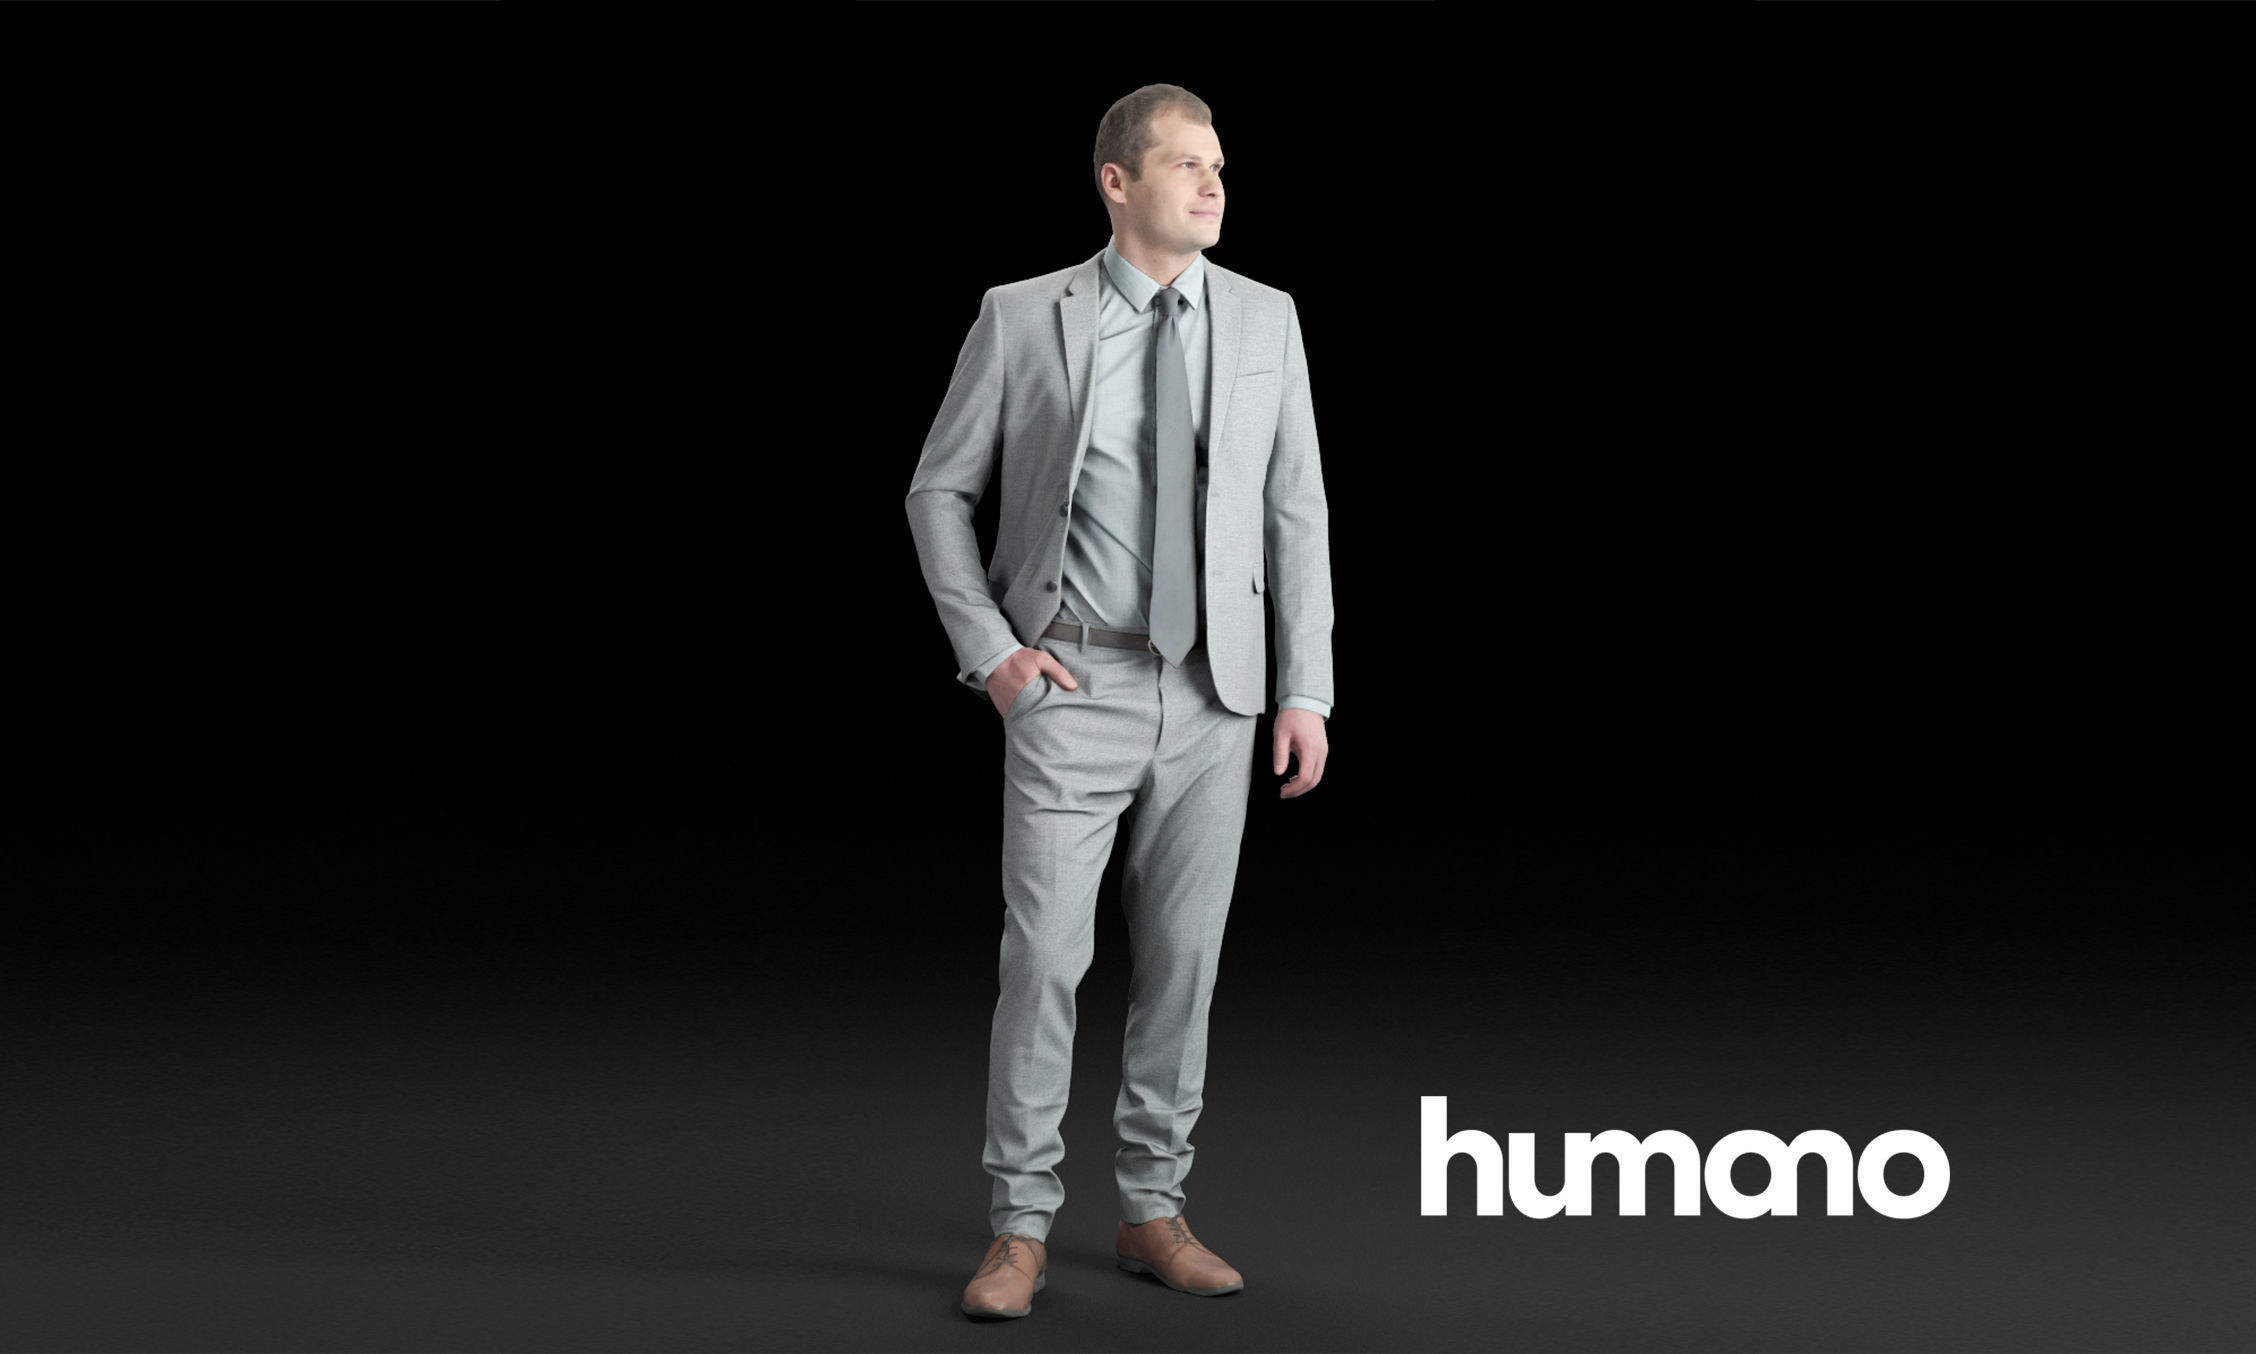 Humano Elegant business man standing and looking 0105